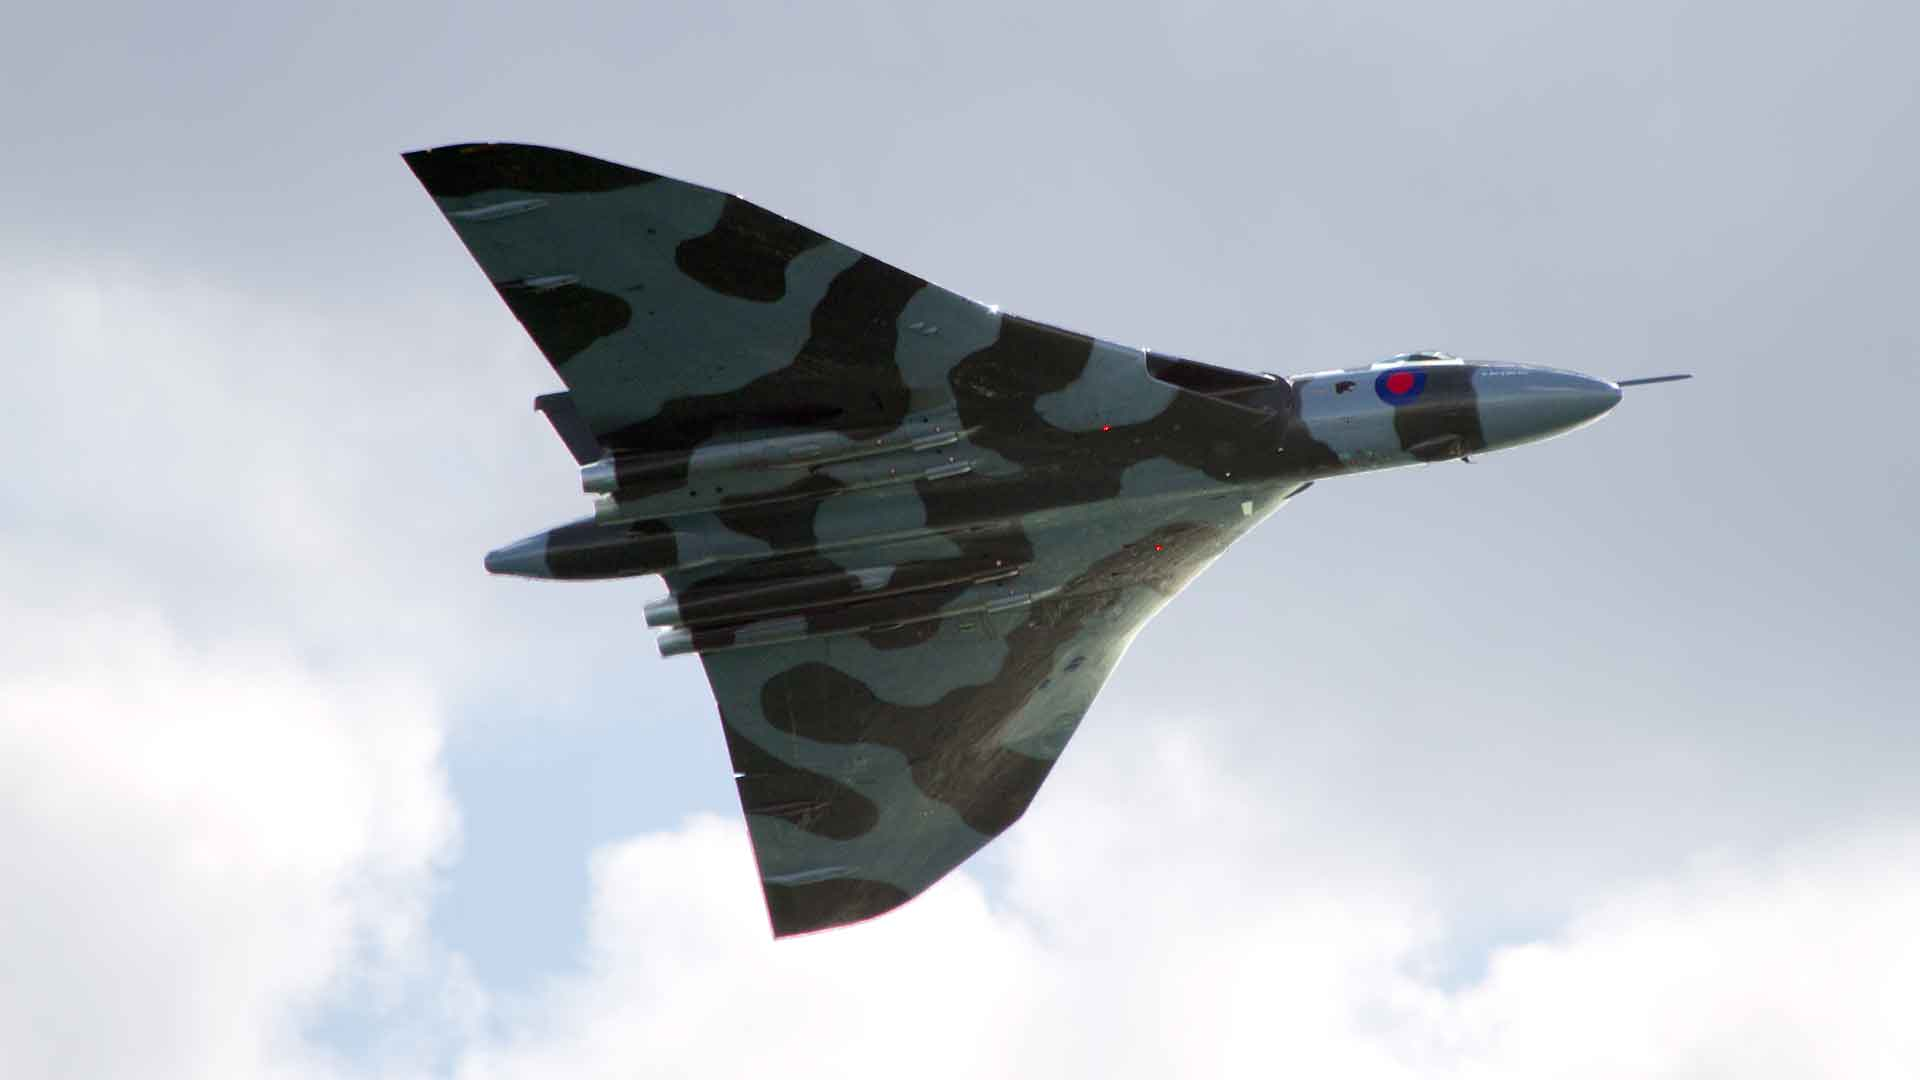 vulcan flight bournemouth air show